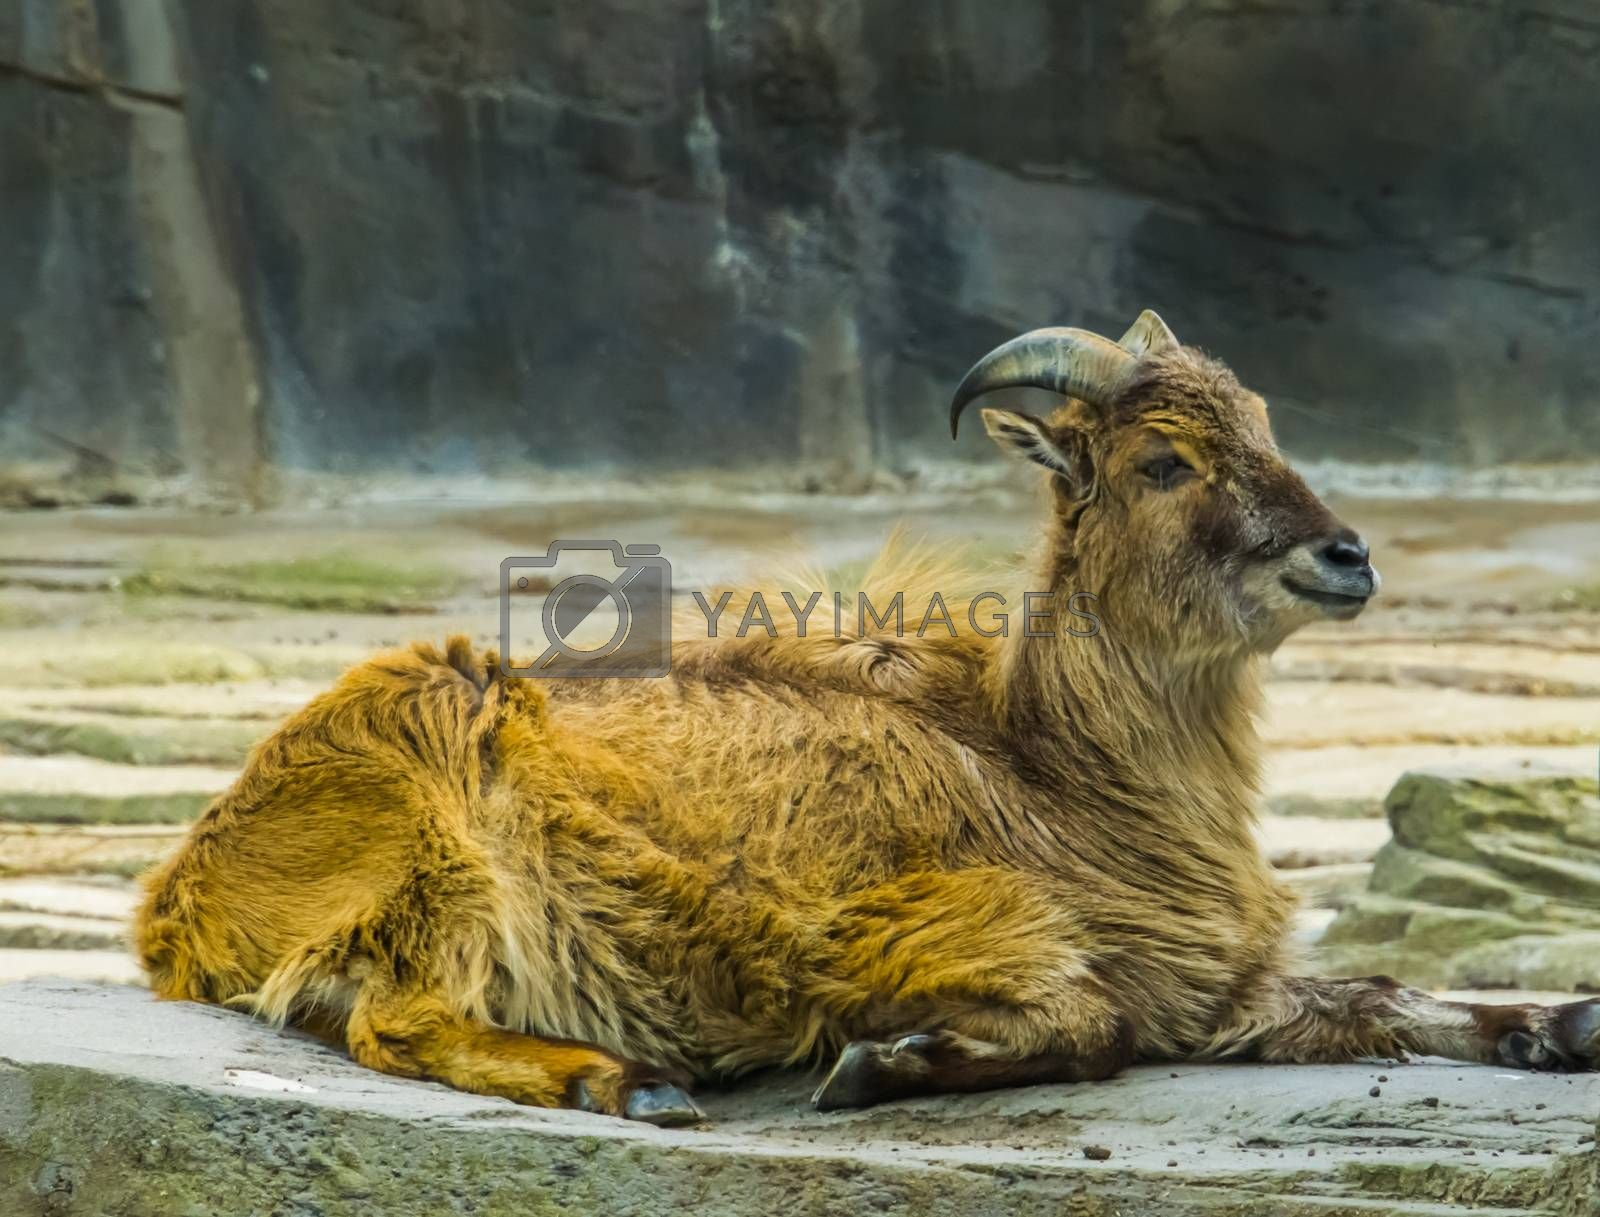 closeup portrait of a himalayan tahr, tropical wild goat from the mountains of India and Asia